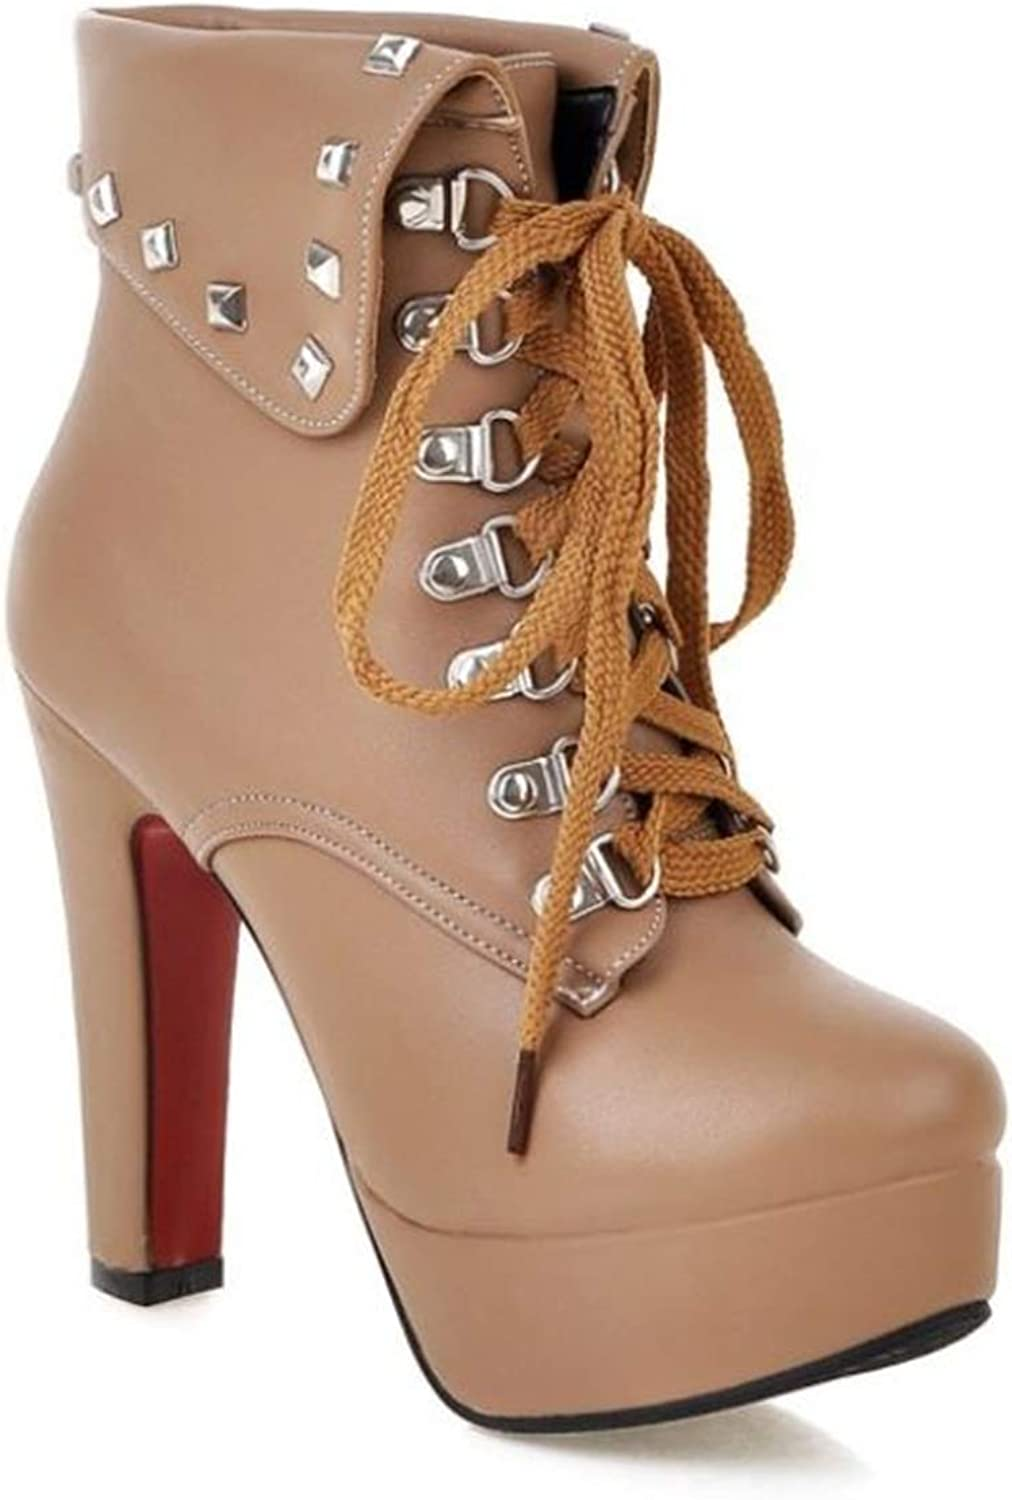 CHENSF Women's Round Toe Ankle Rivet Lace Up Stiletto High Heel Boots